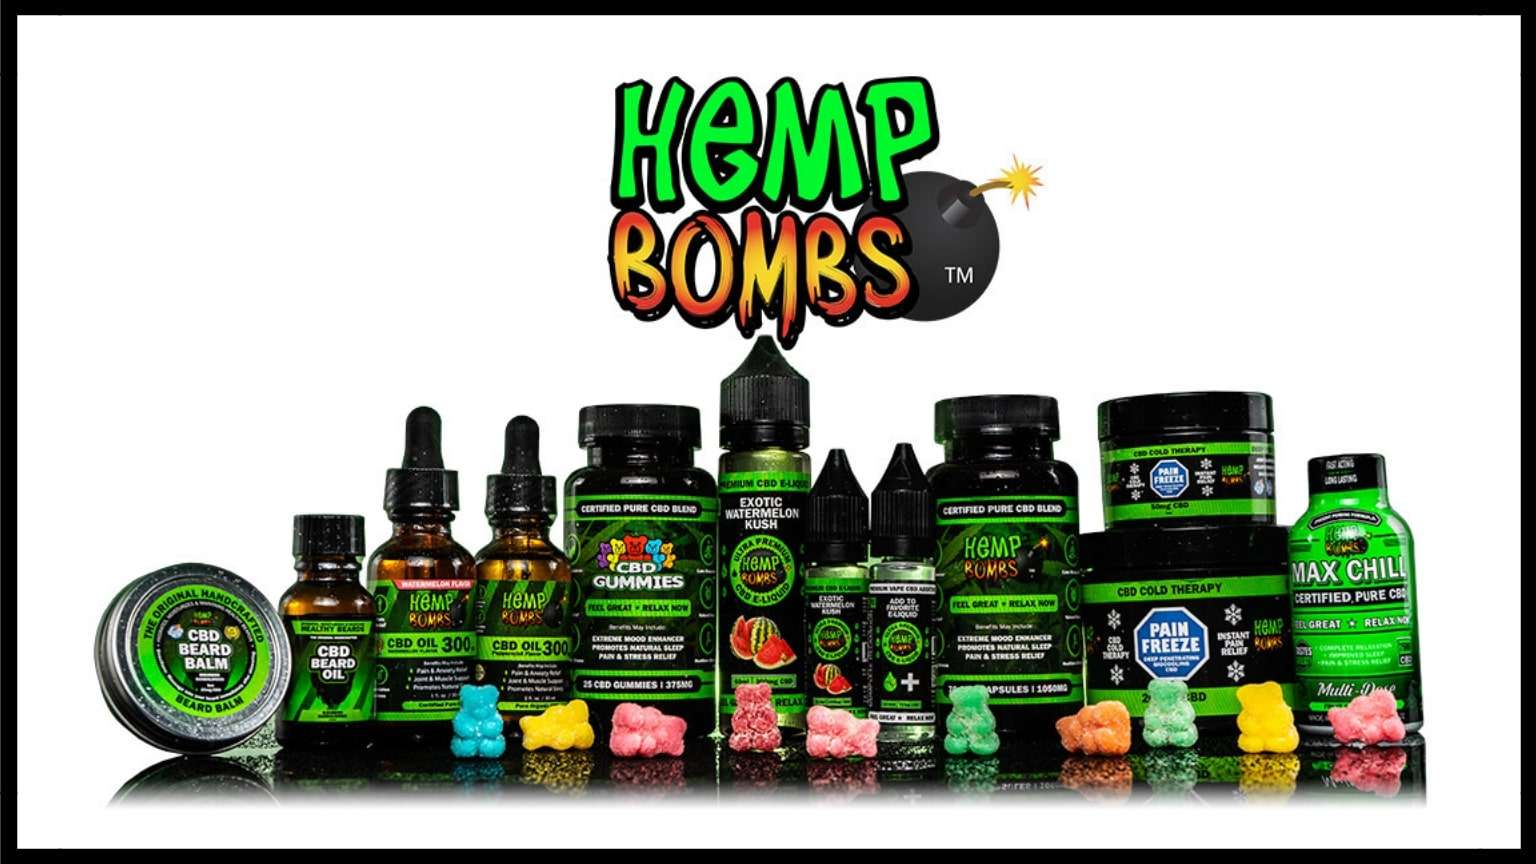 Can't Afford CBD? Here are 3 of the Best CBD Brands that